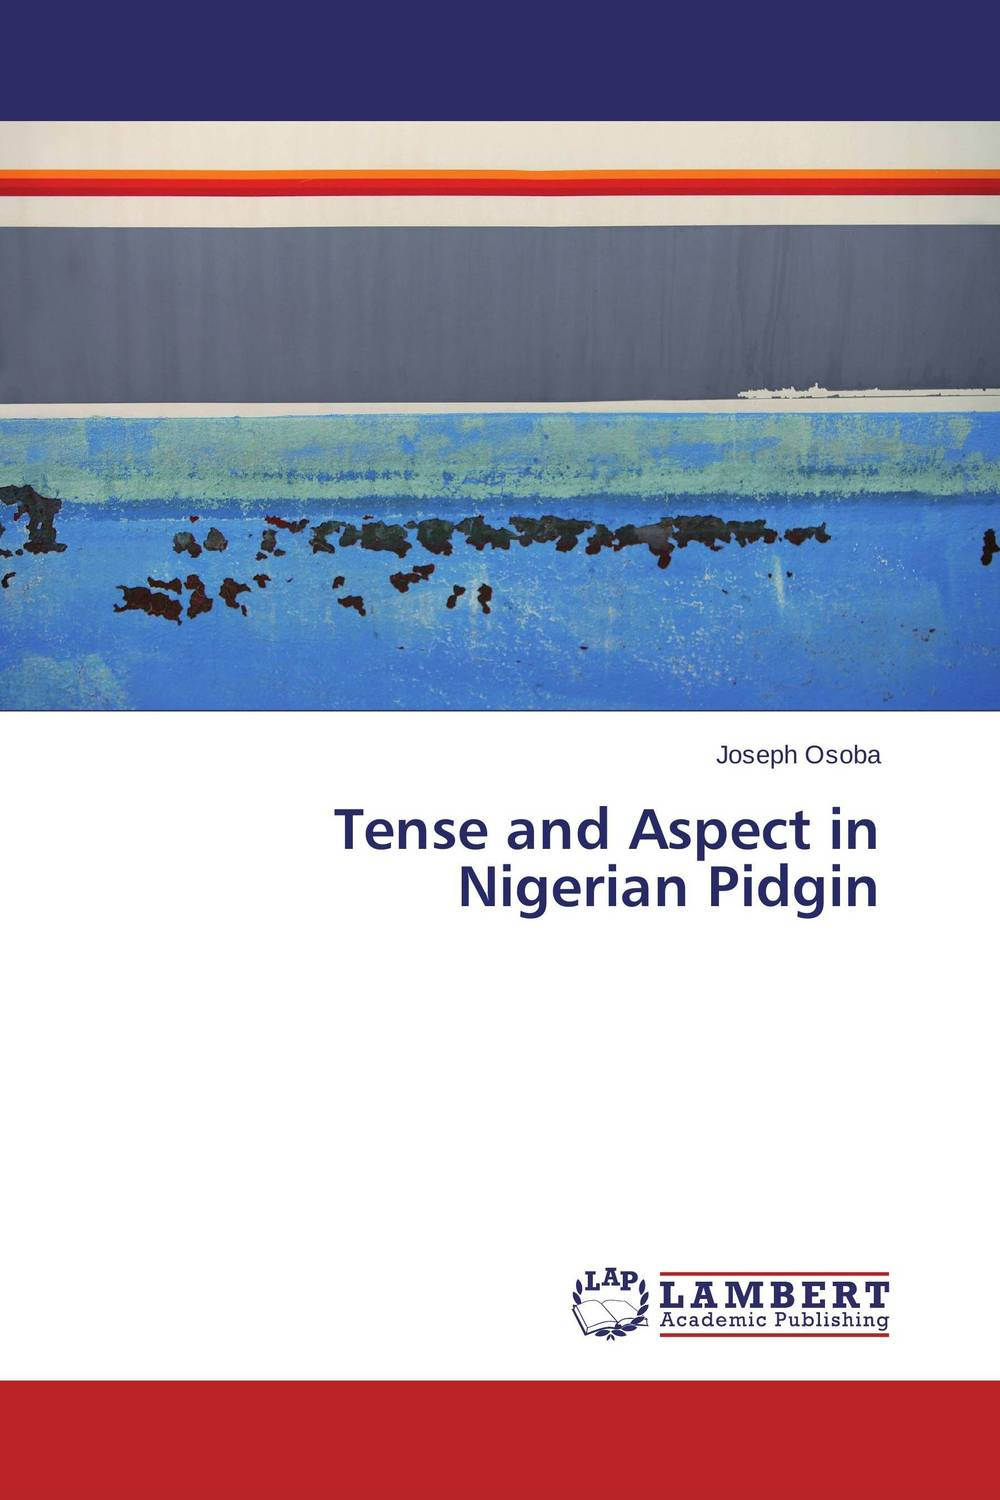 Tense and Aspect in Nigerian Pidgin belousov a security features of banknotes and other documents methods of authentication manual денежные билеты бланки ценных бумаг и документов